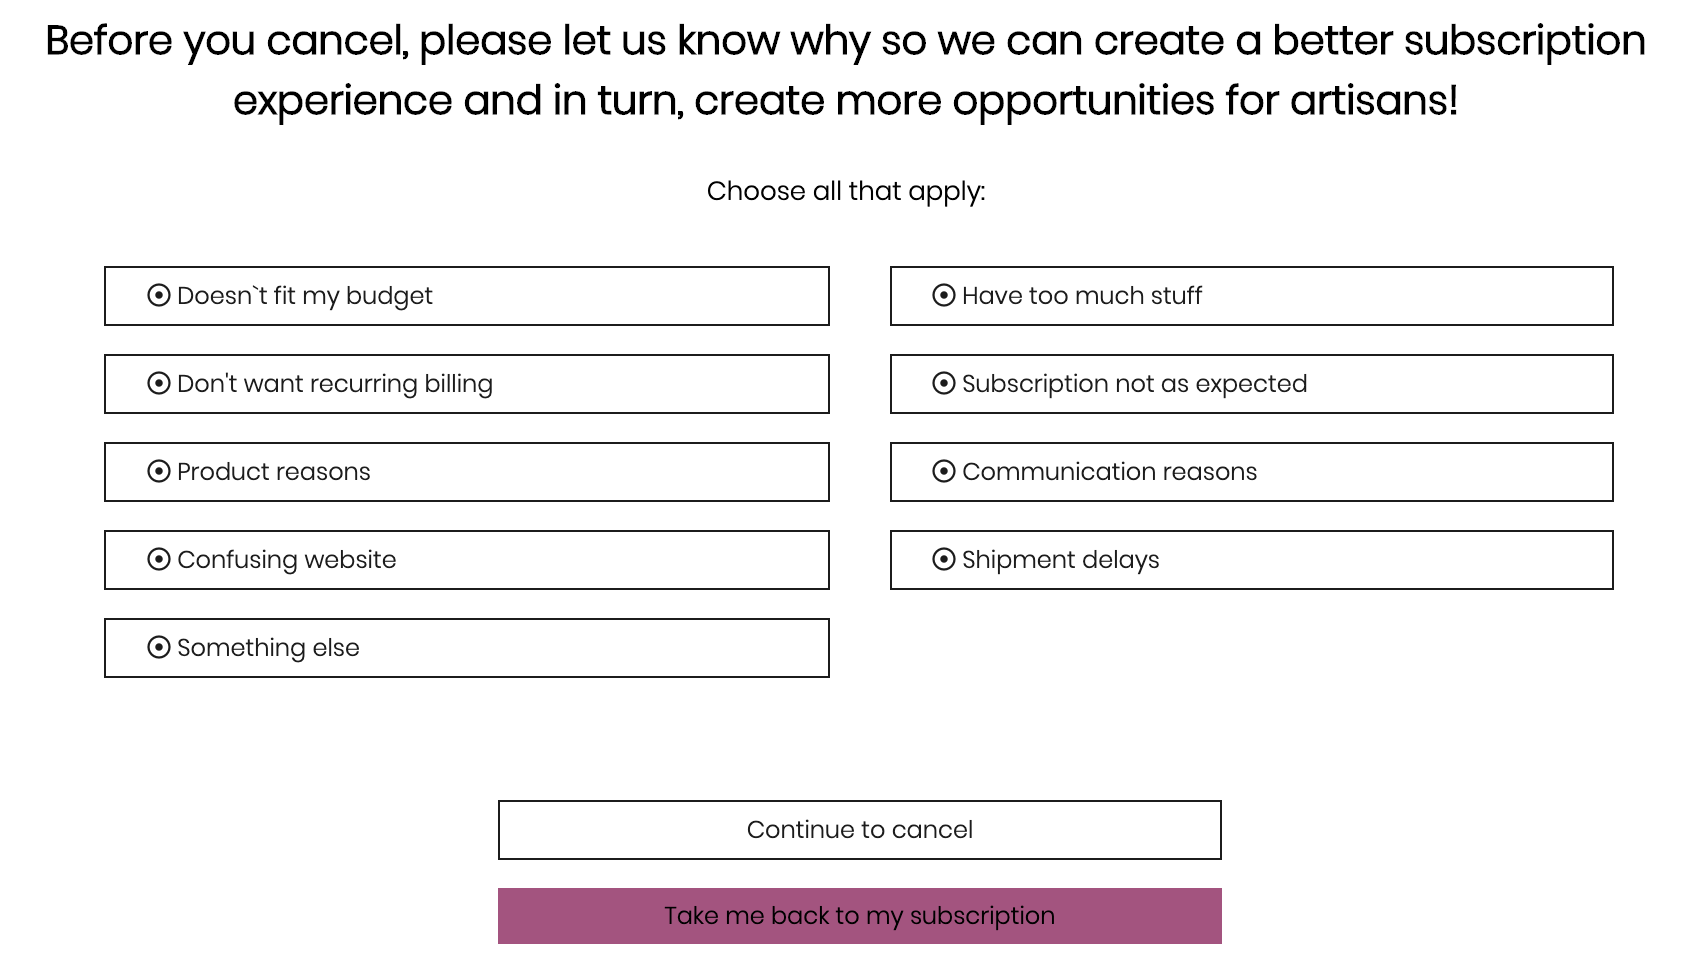 How do I cancel or unsubscribe? – How can we help you?